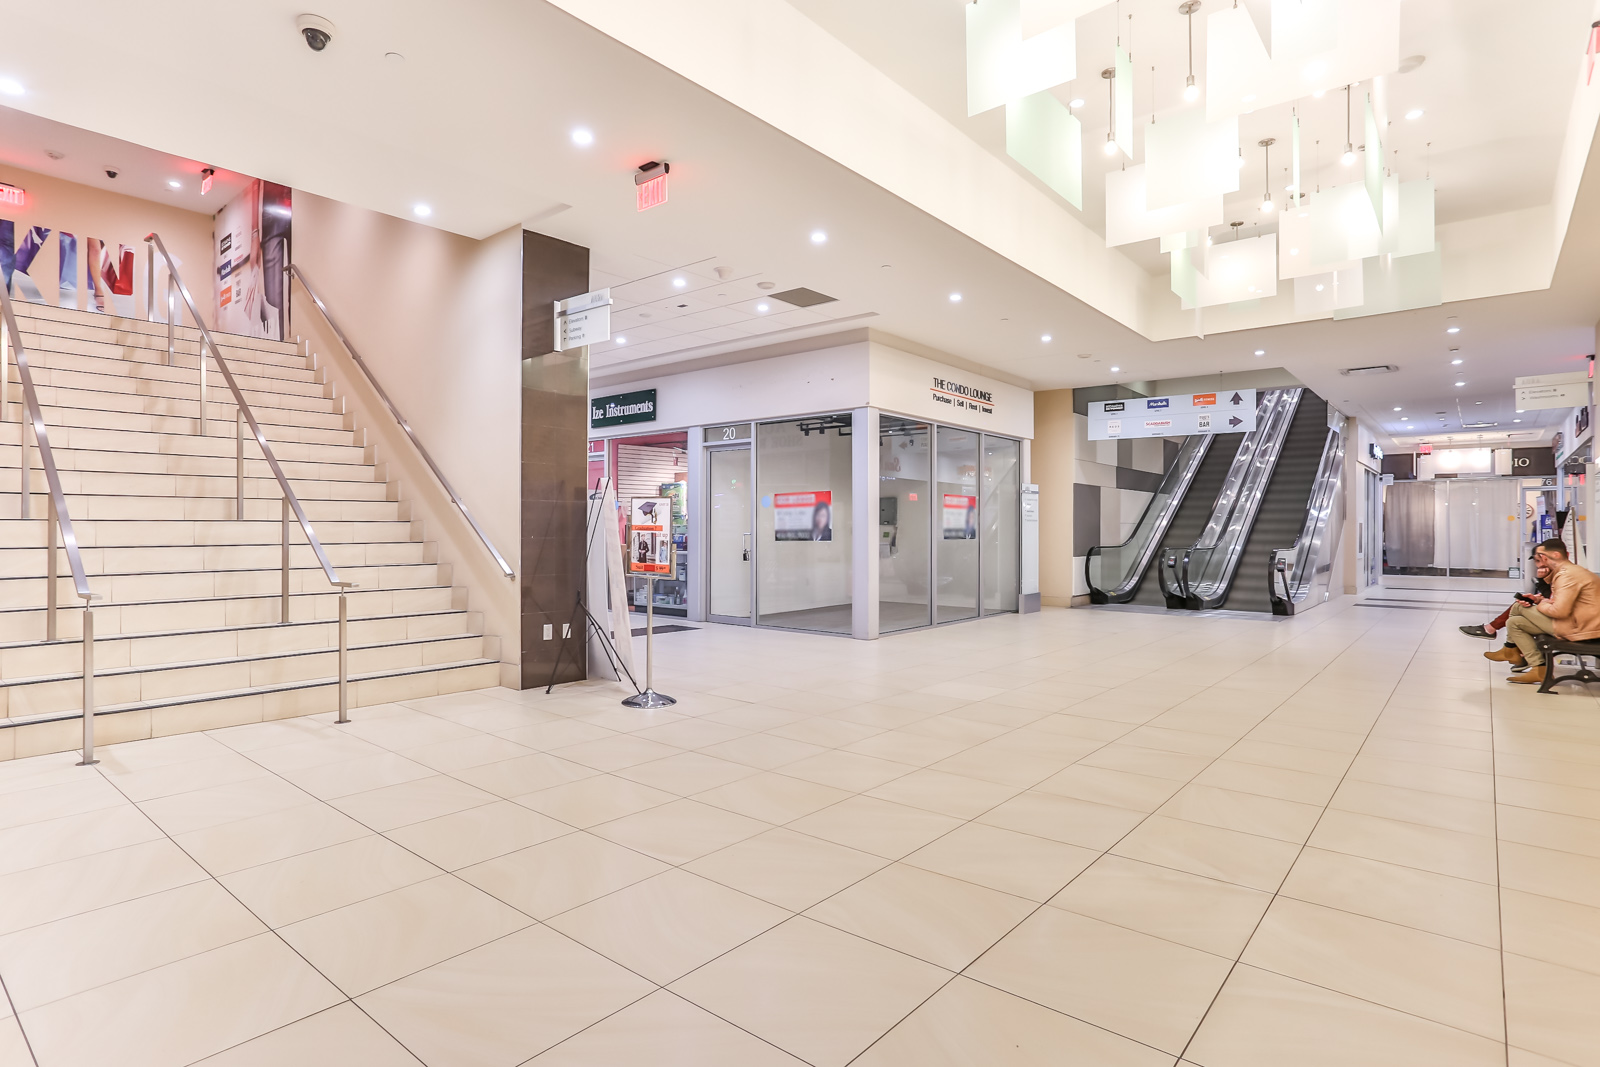 Photo of stairs and escalator with unit 20 at the centre.